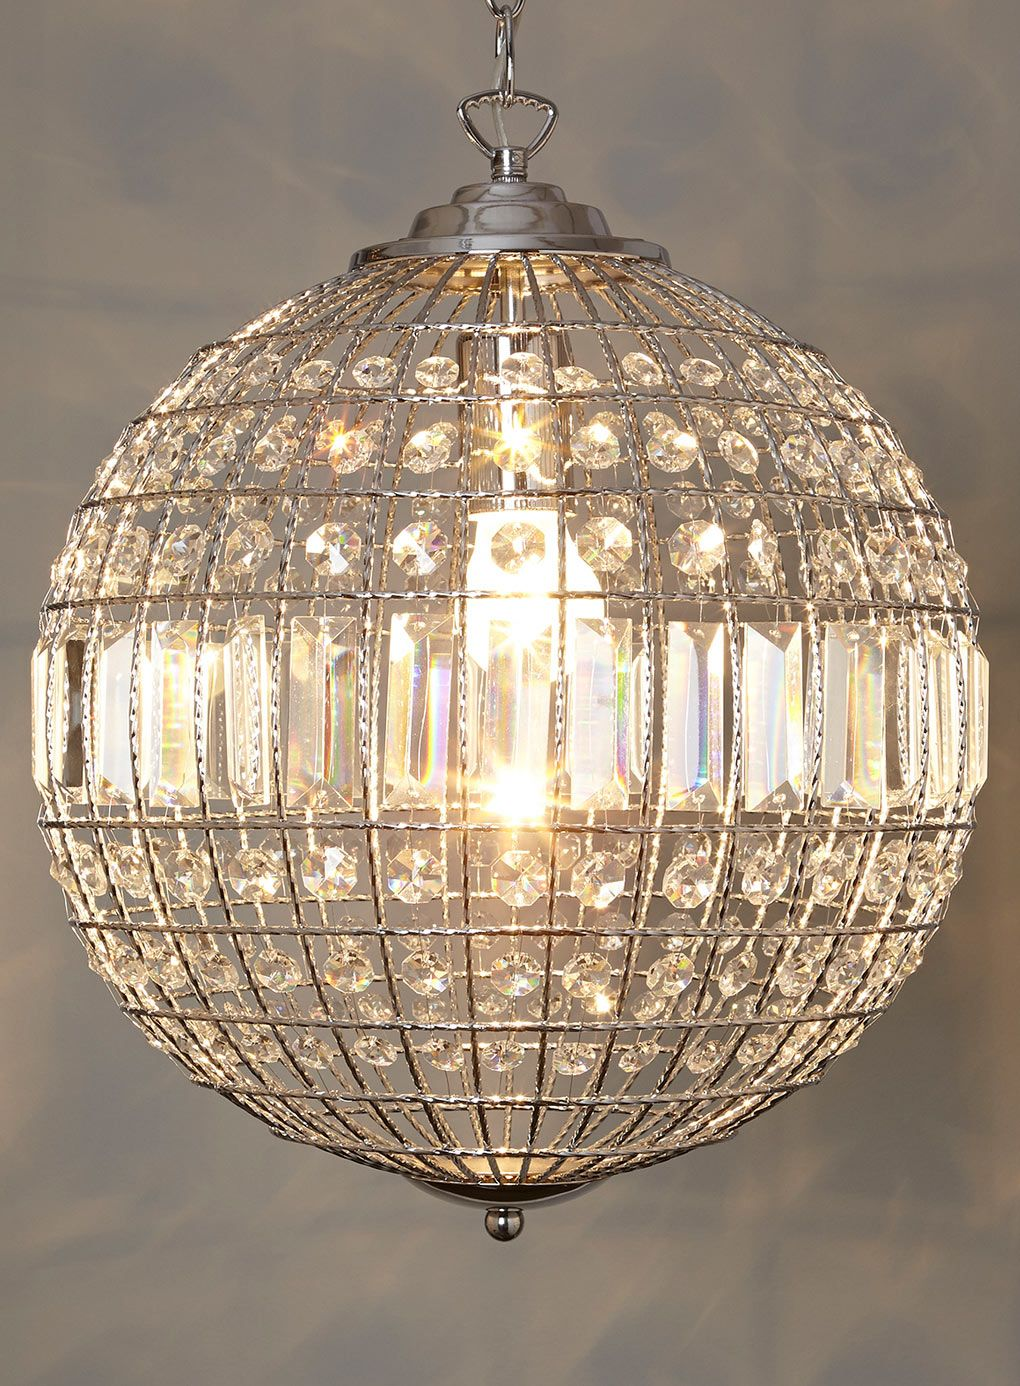 Ursula small crystal ball pendant - Lighting Event - Home ...